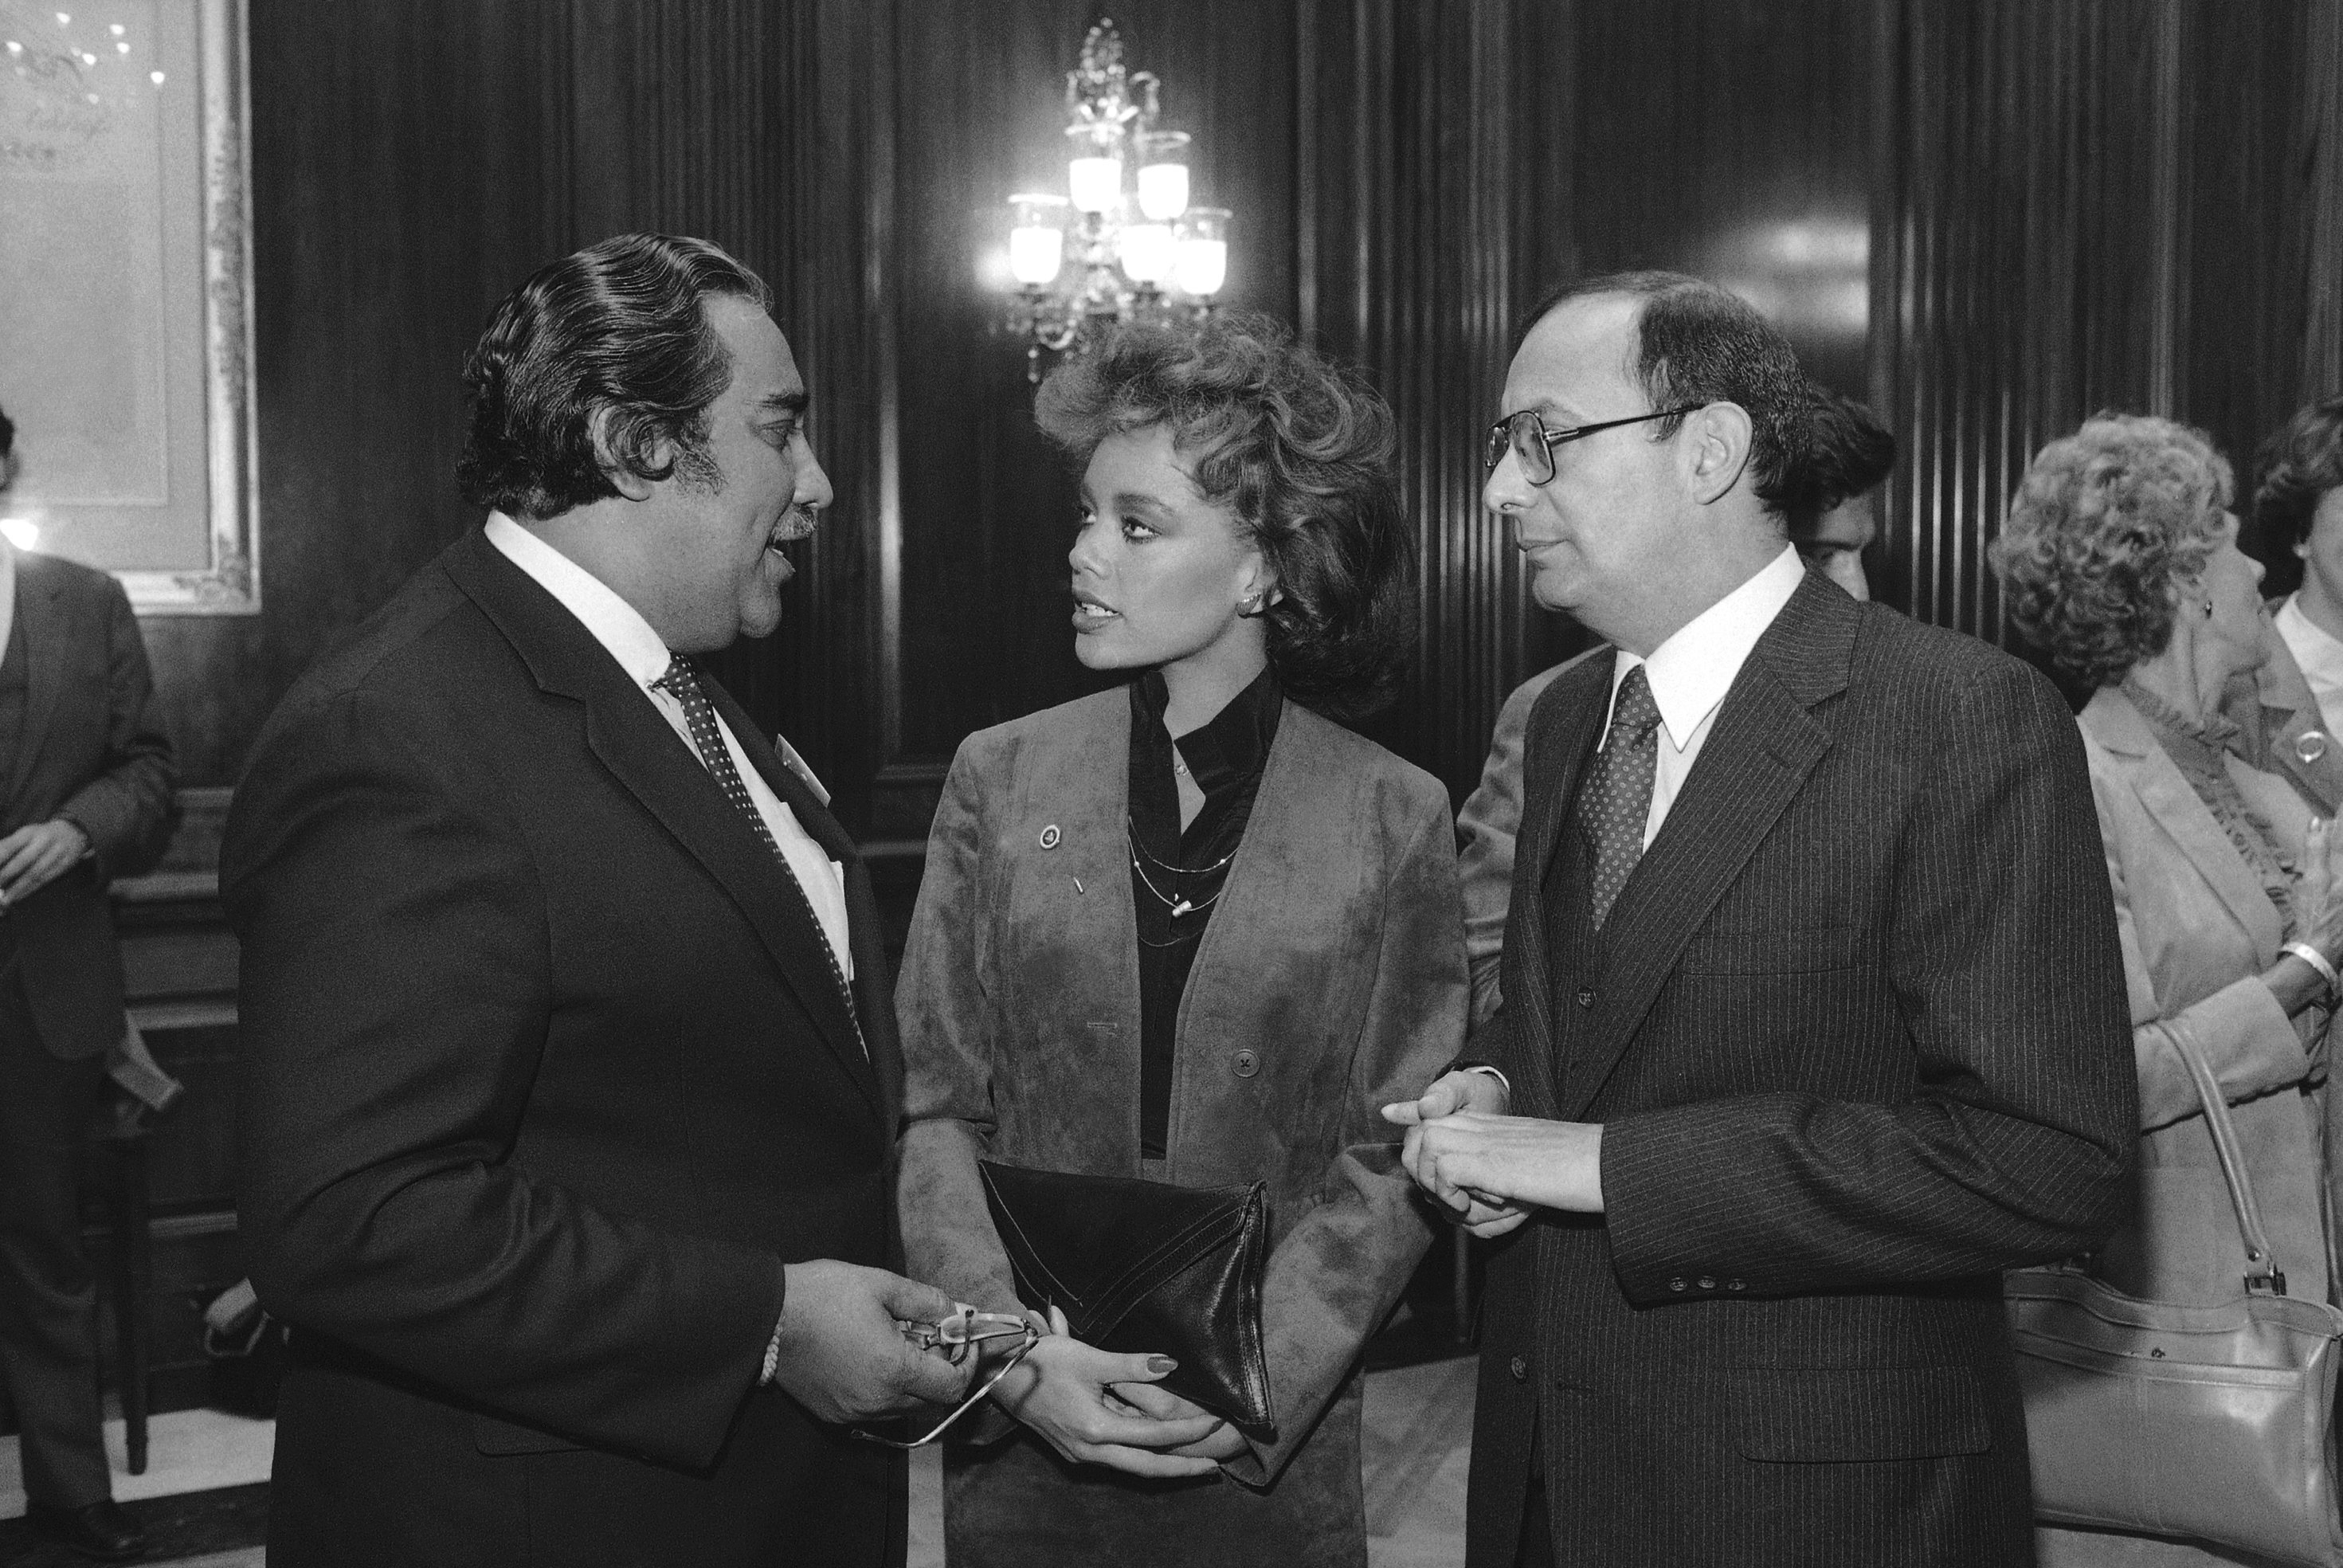 Miss America Vanessa Williams is flanked by Rep. Charles Rangel, D-N.Y., left, and Sen. Alfonse D'Amato, R-N.Y., during a reception on Capitol Hill in Washington, Oct. 17, 1983.